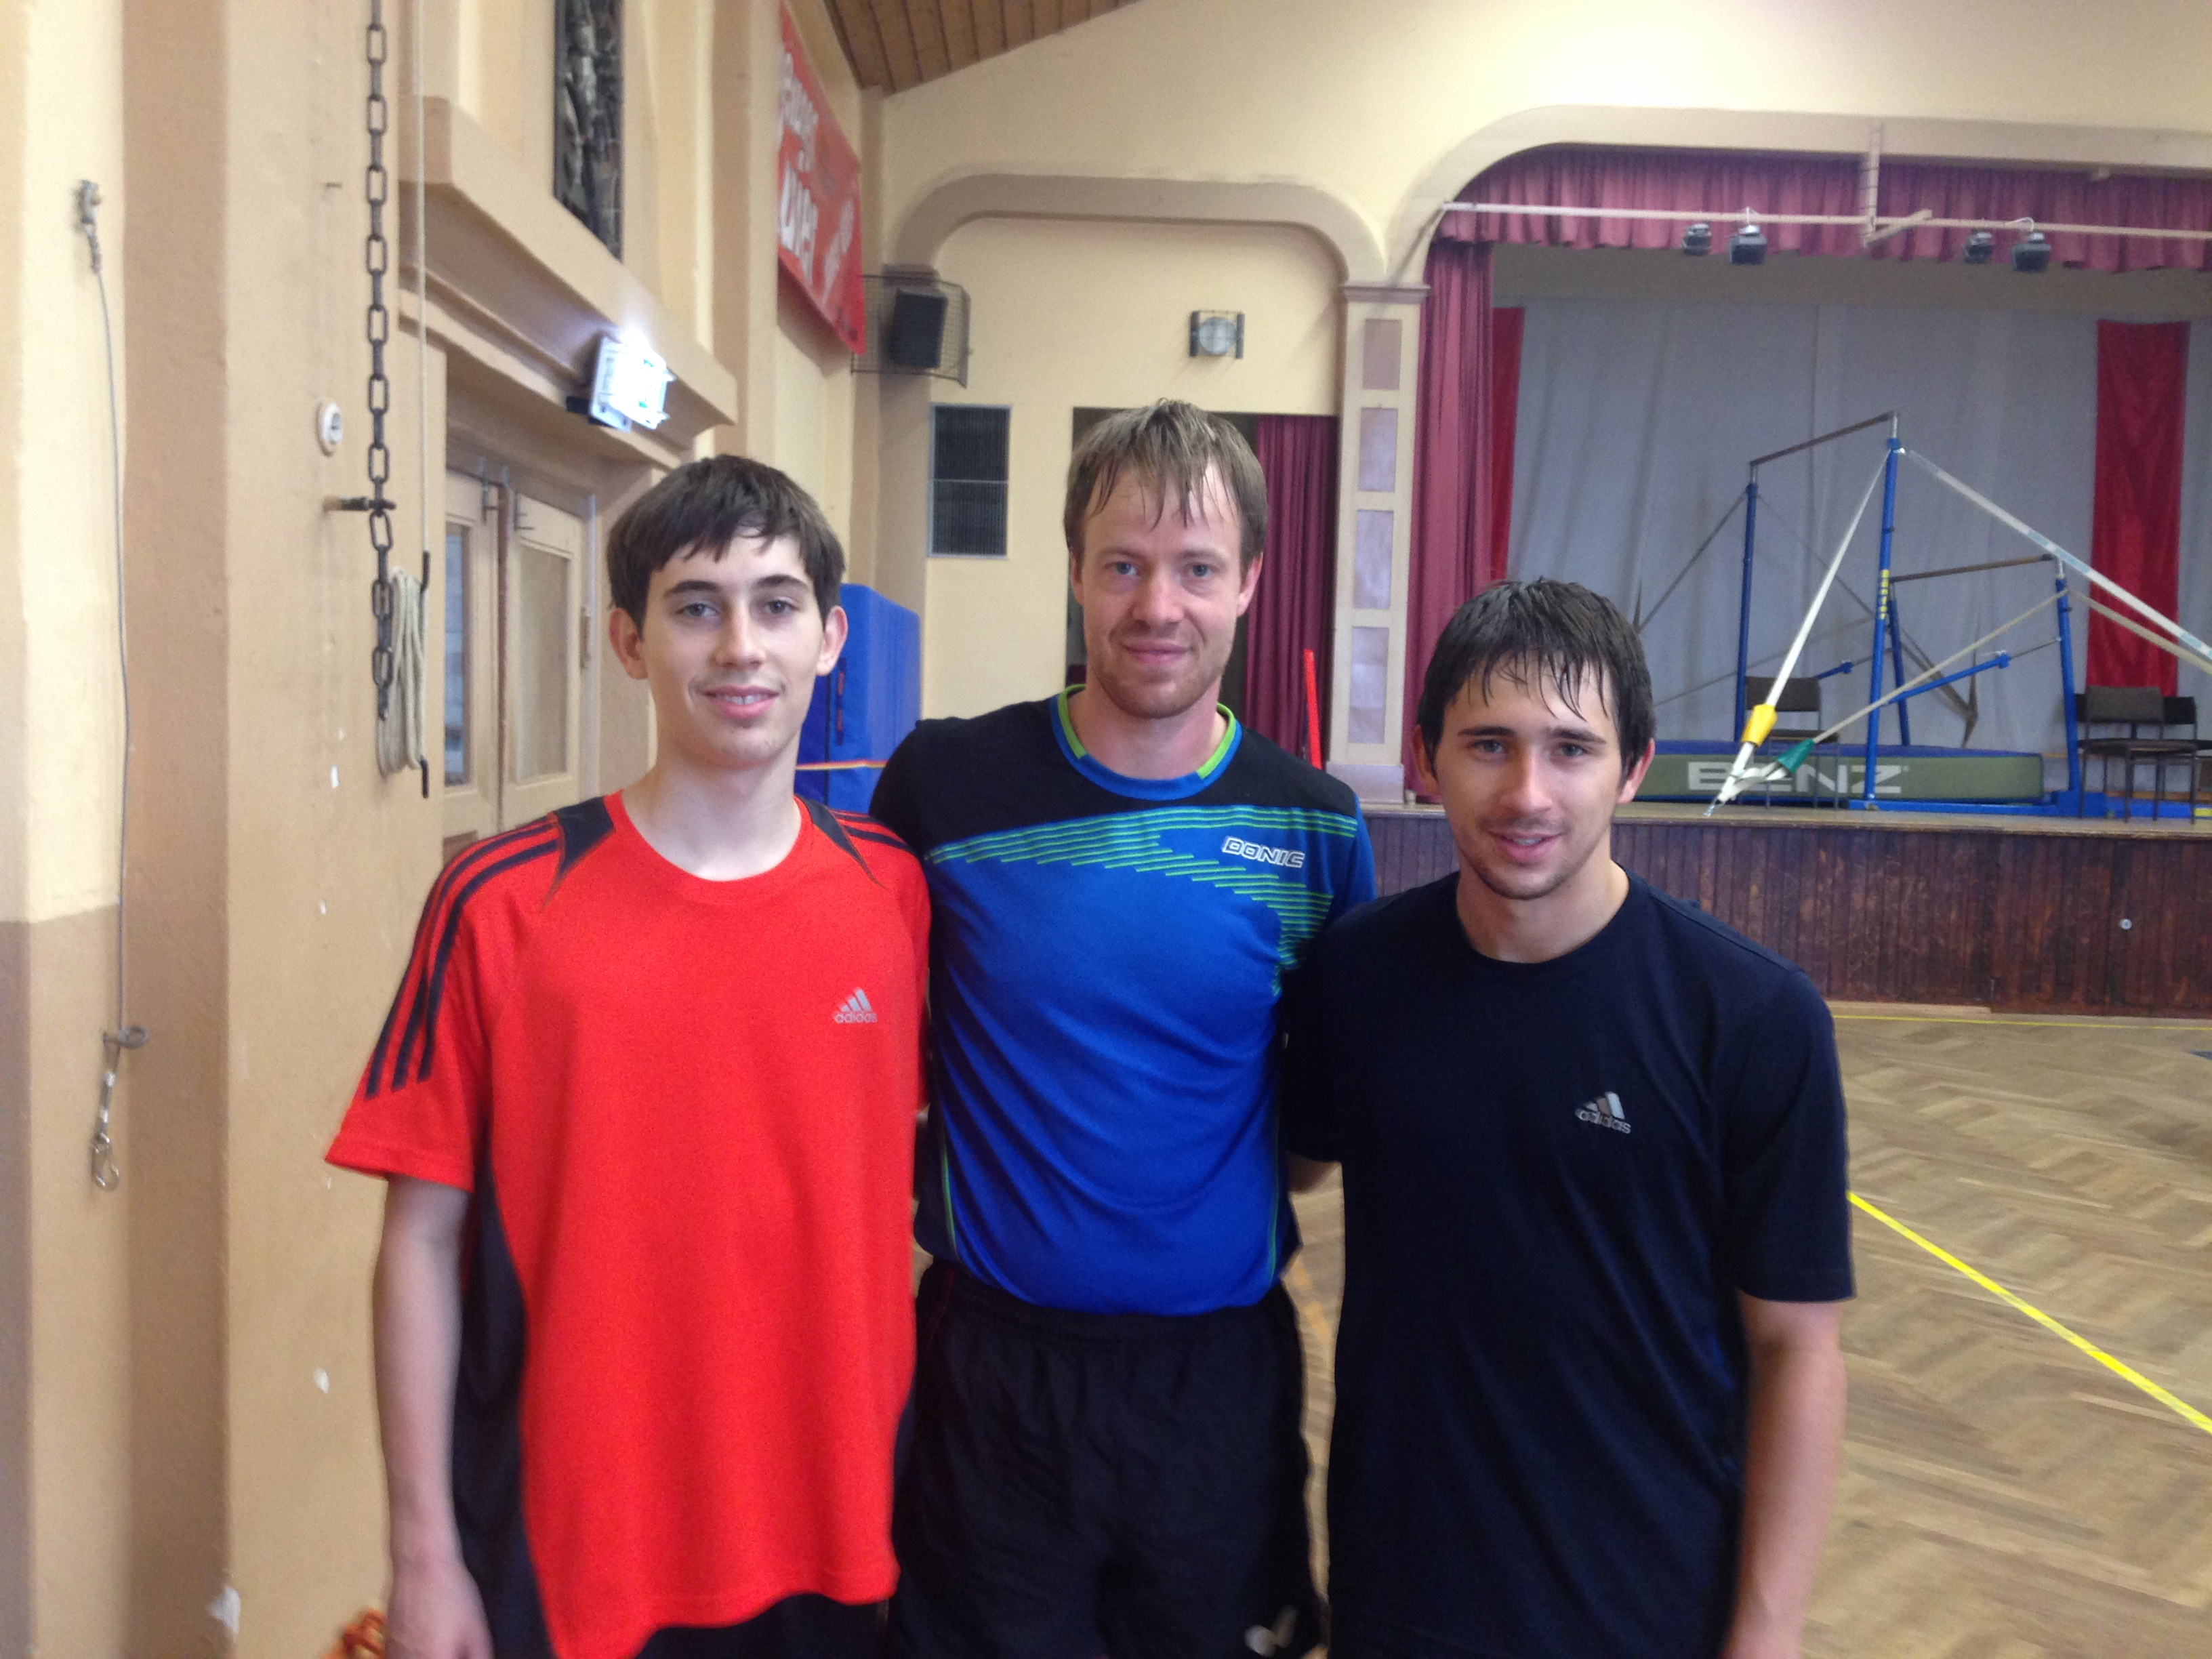 Connor and Chase with German National Team Player Patrick Baum